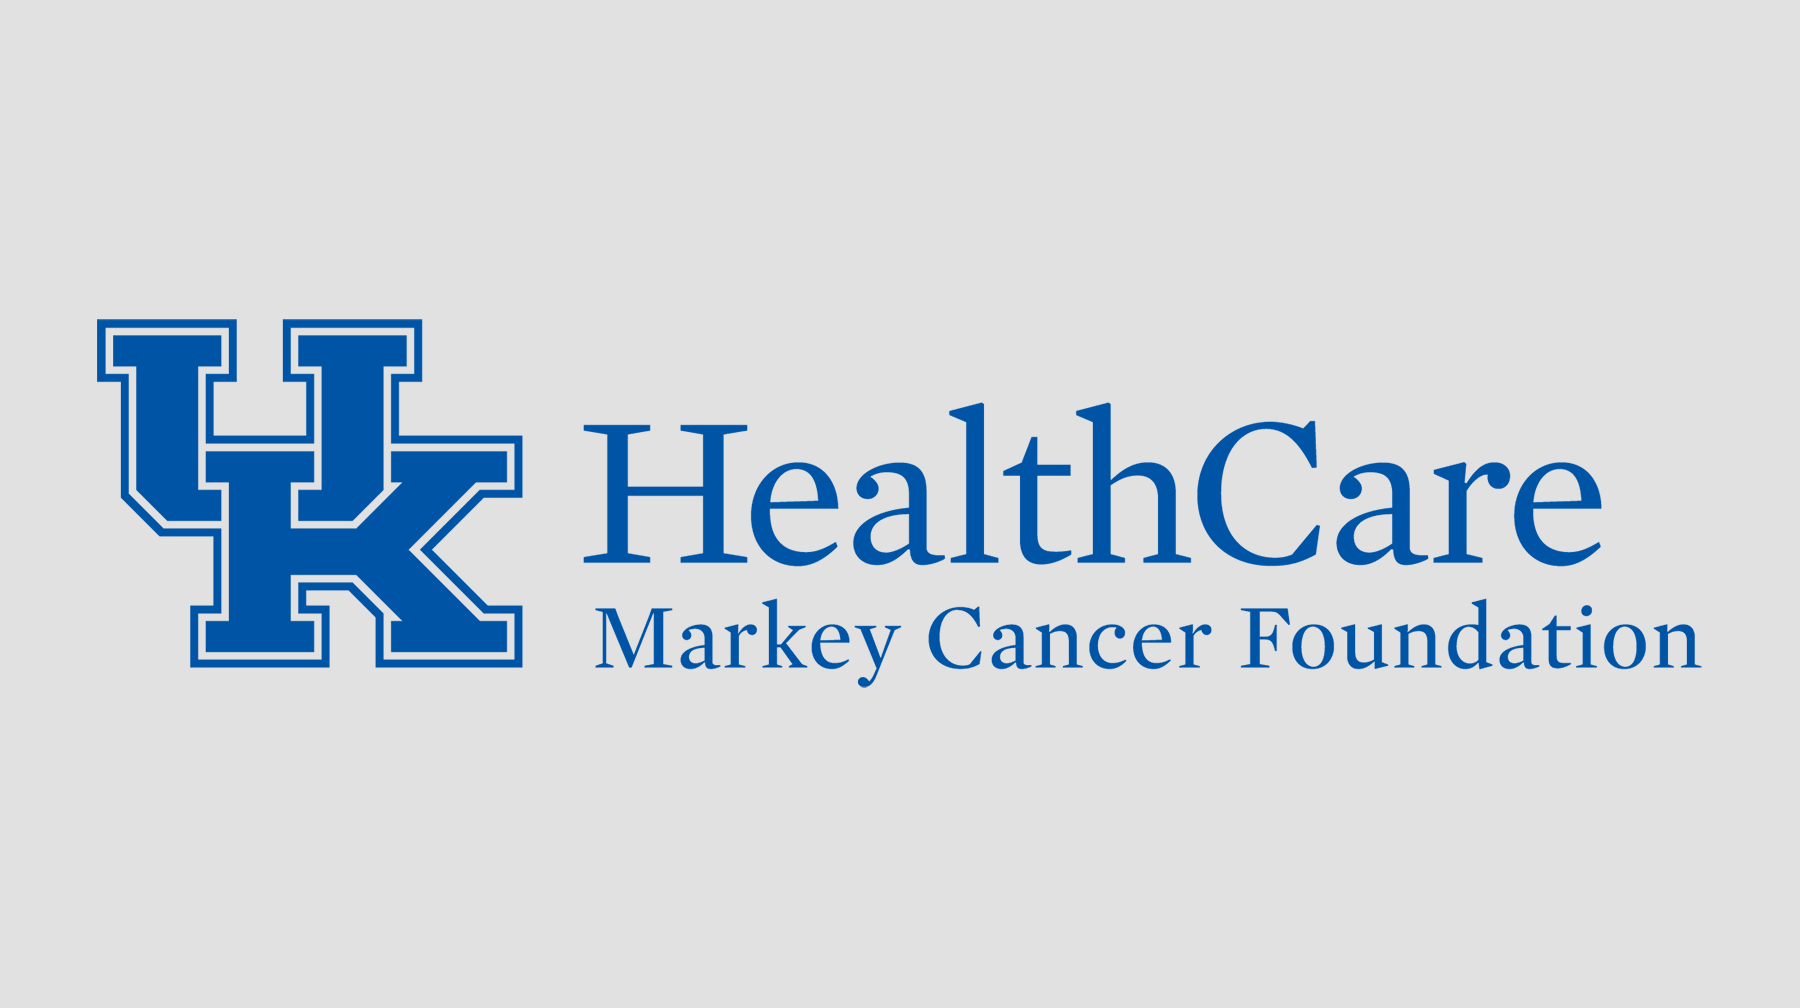 UK Markey Cancer Foundation Concert on the Hill Friday, April 29th